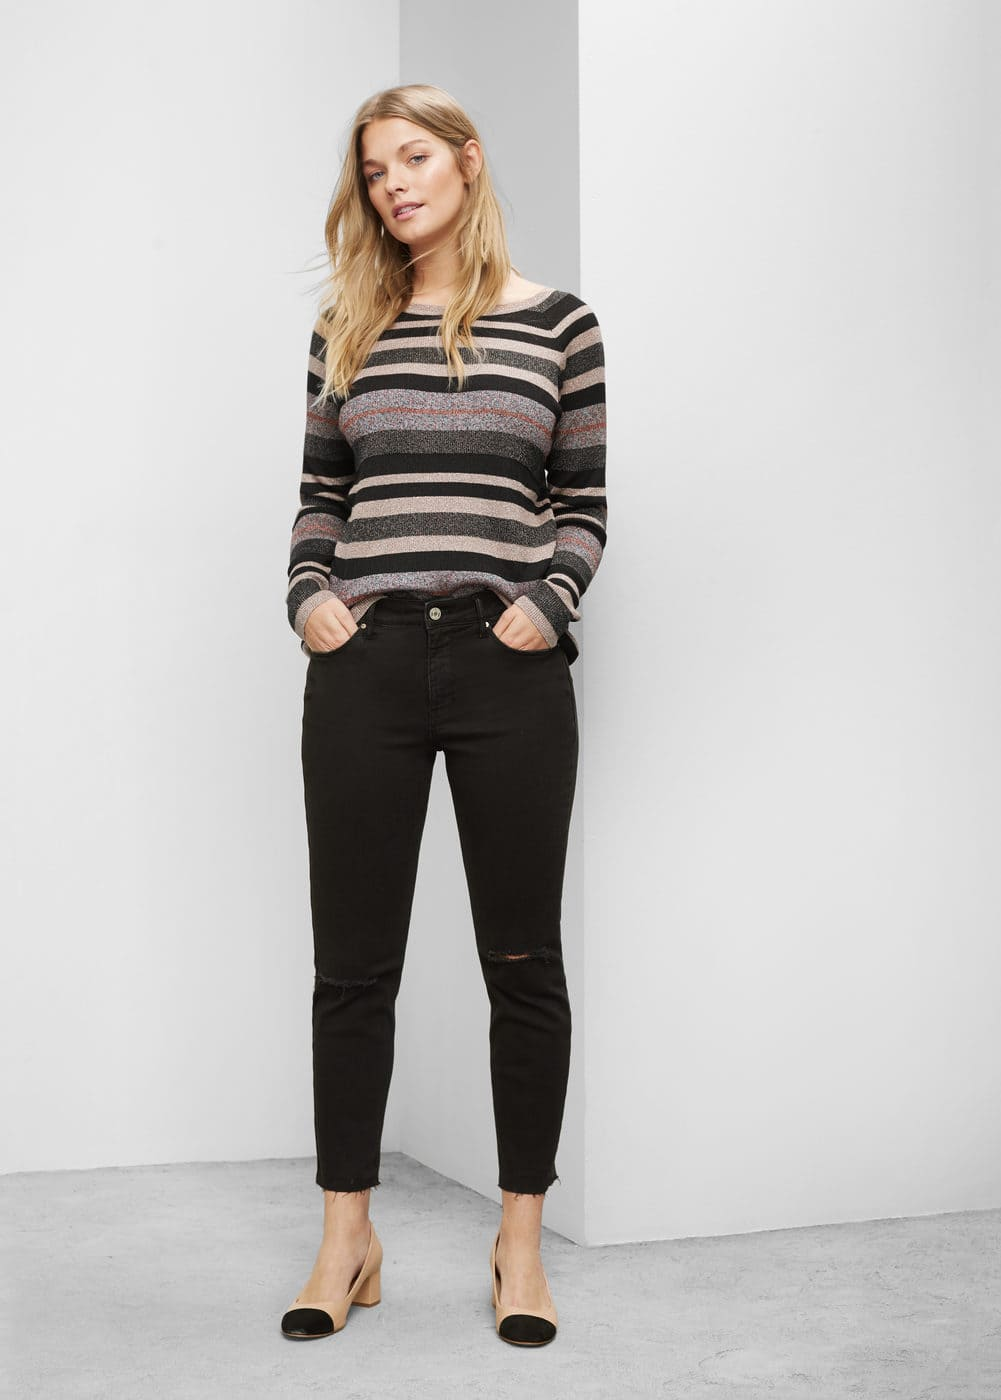 Fine-knit metallic sweater | VIOLETA BY MANGO